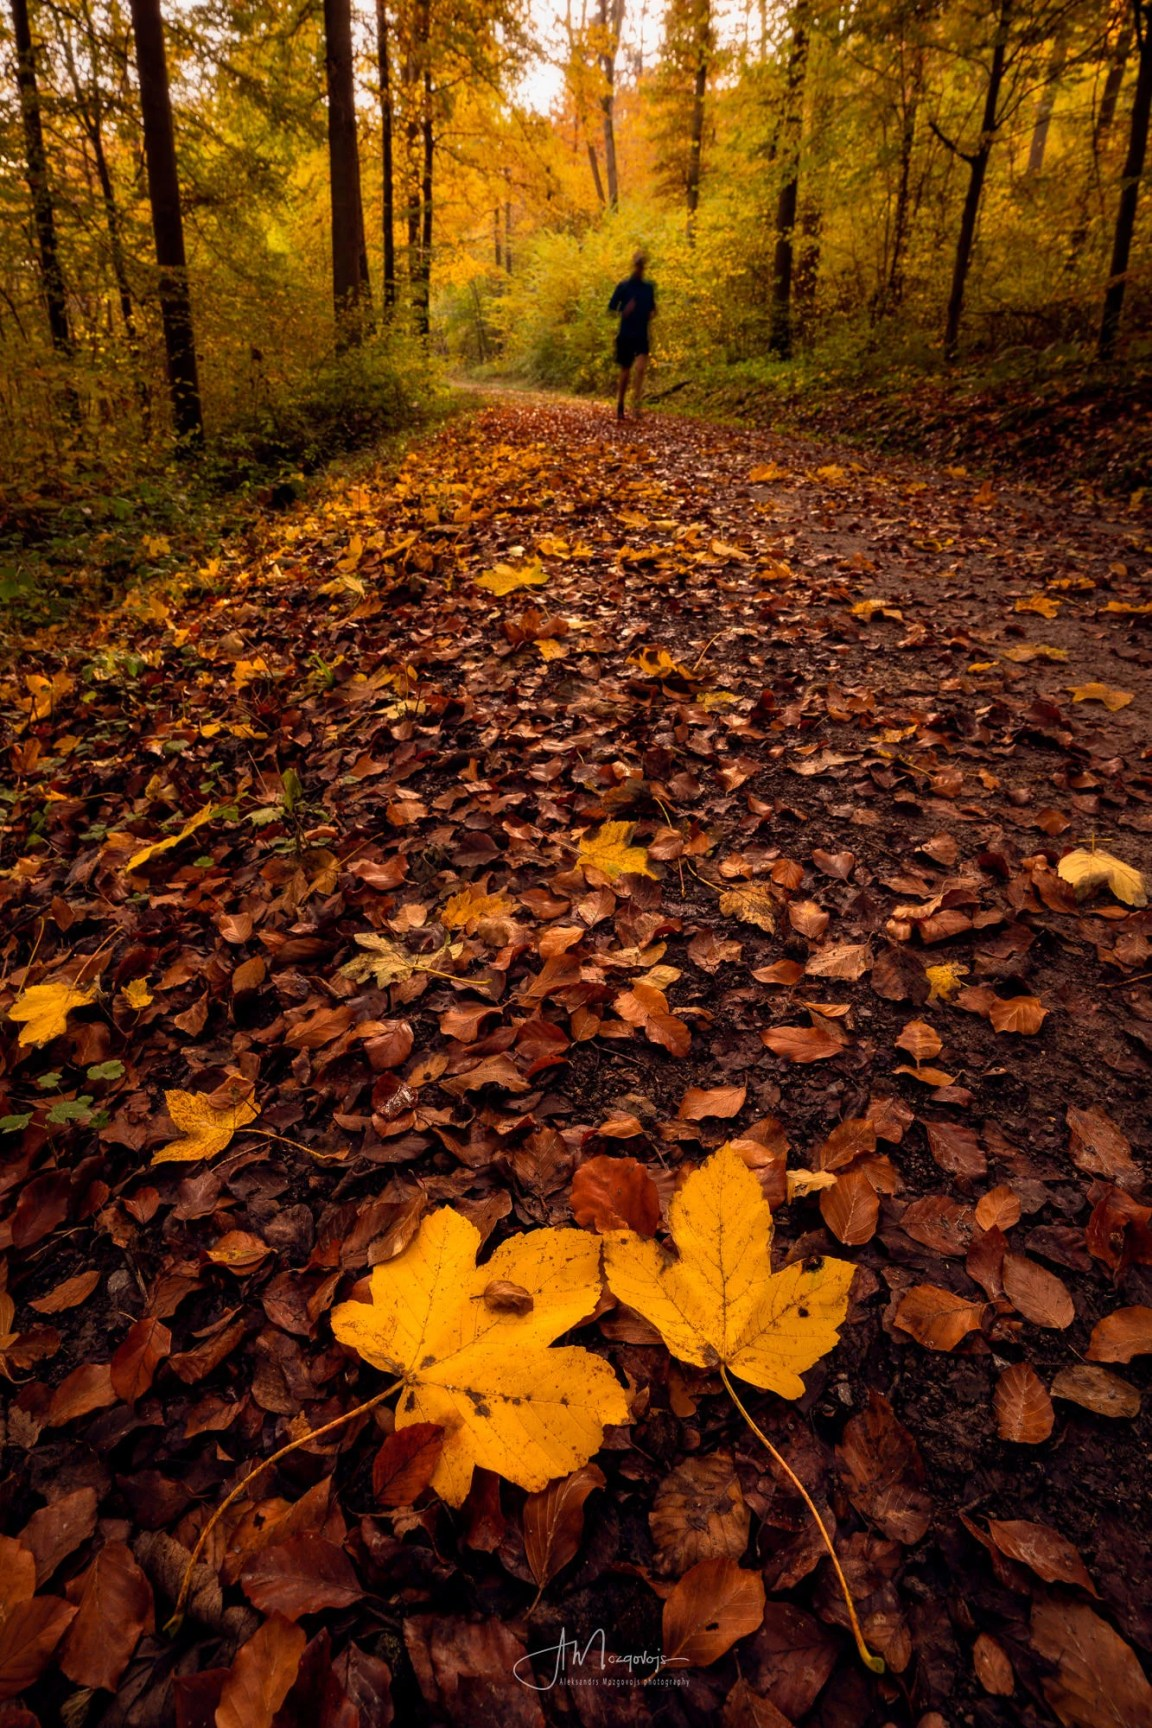 A classic composition in photographing autumn colors